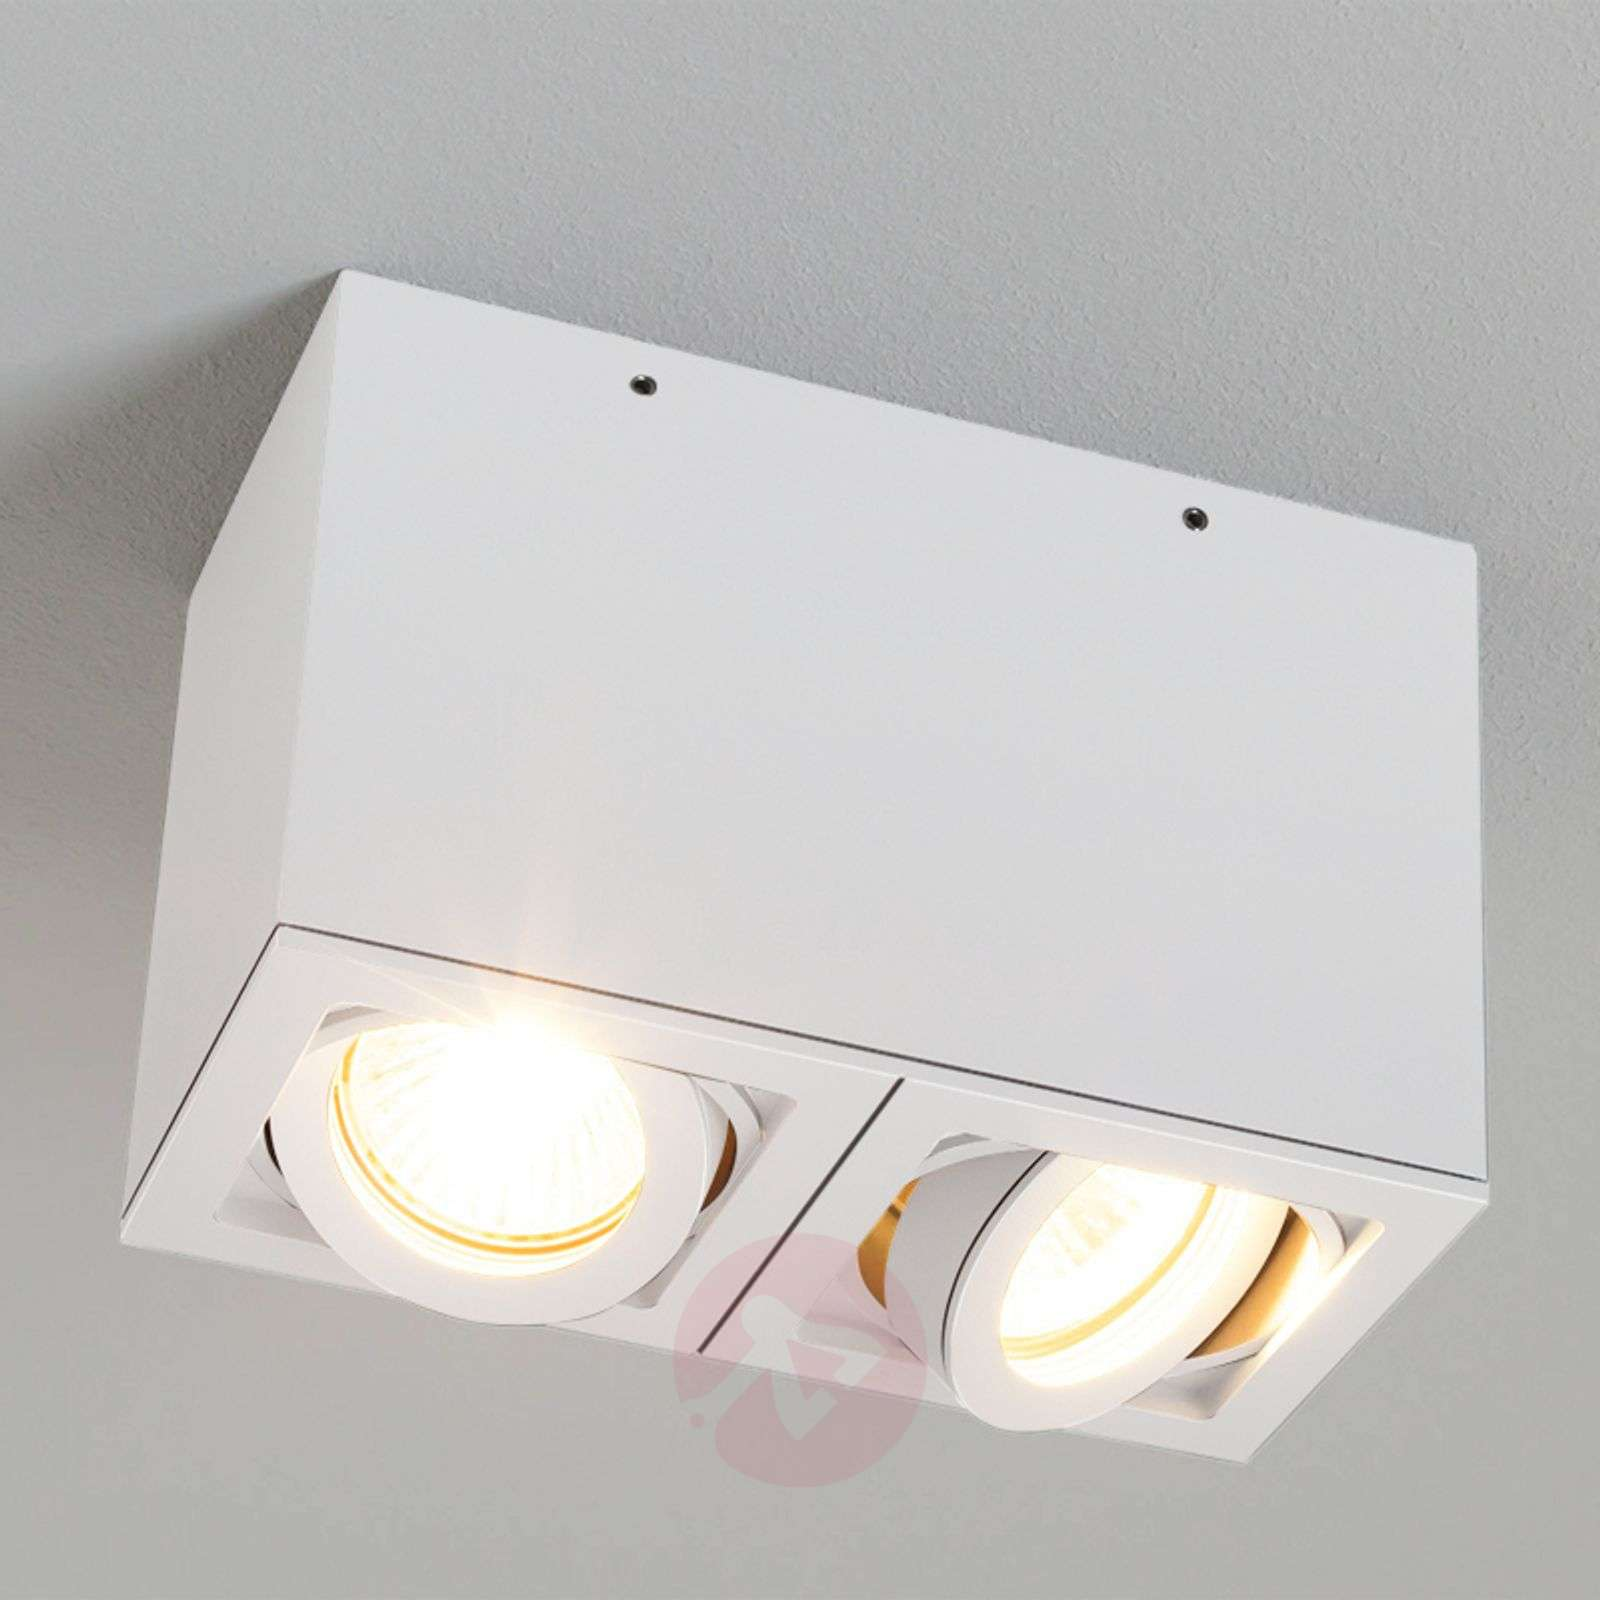 Faretto a soffitto a 2 luci LIGHT BOX 2-3023038X-01